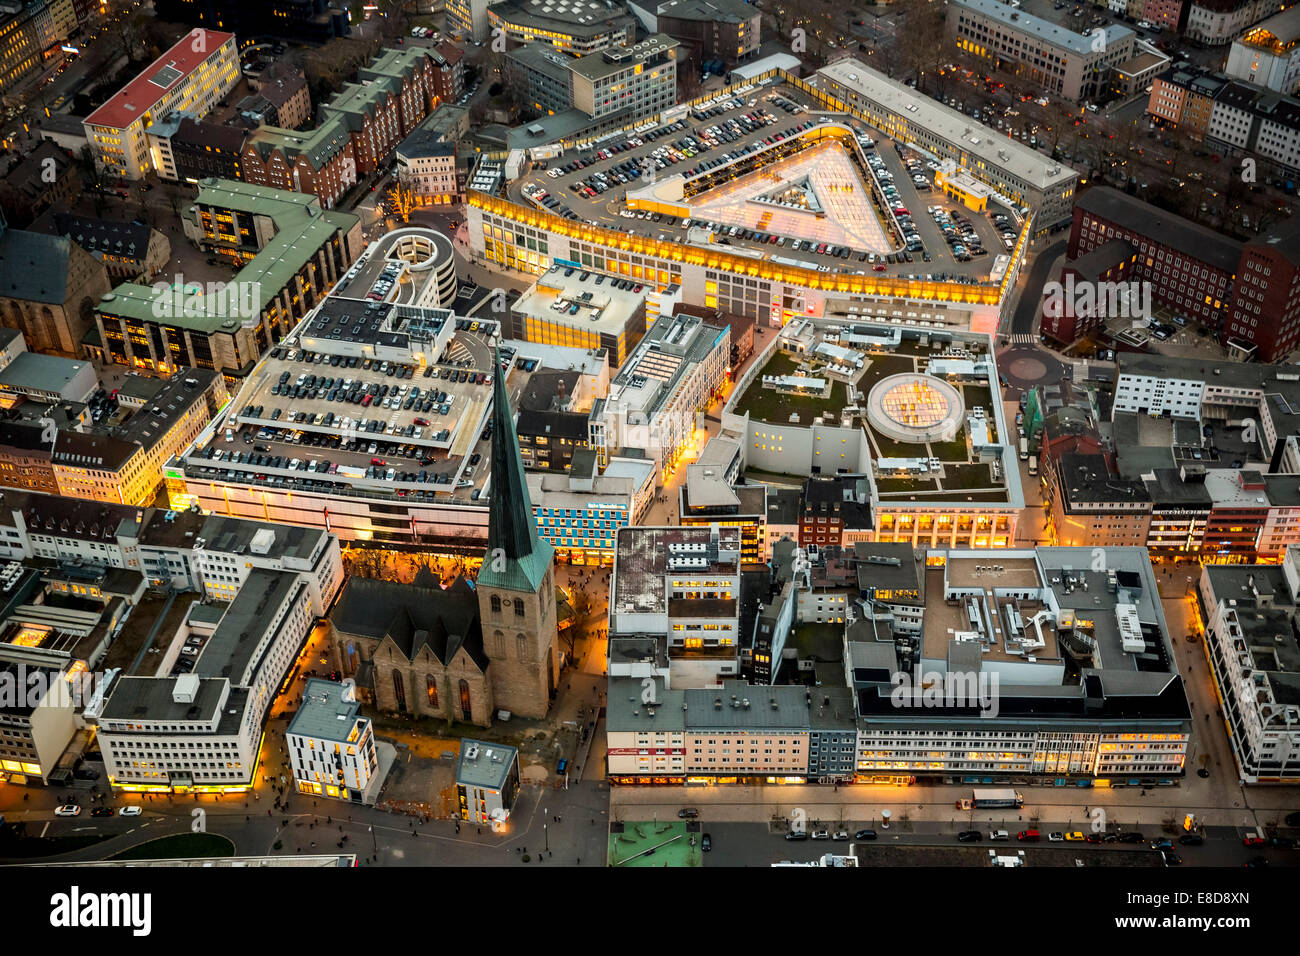 Dortmund Shopping Center Aerial View Thier Galerie Mall Dortmund Stock Photos